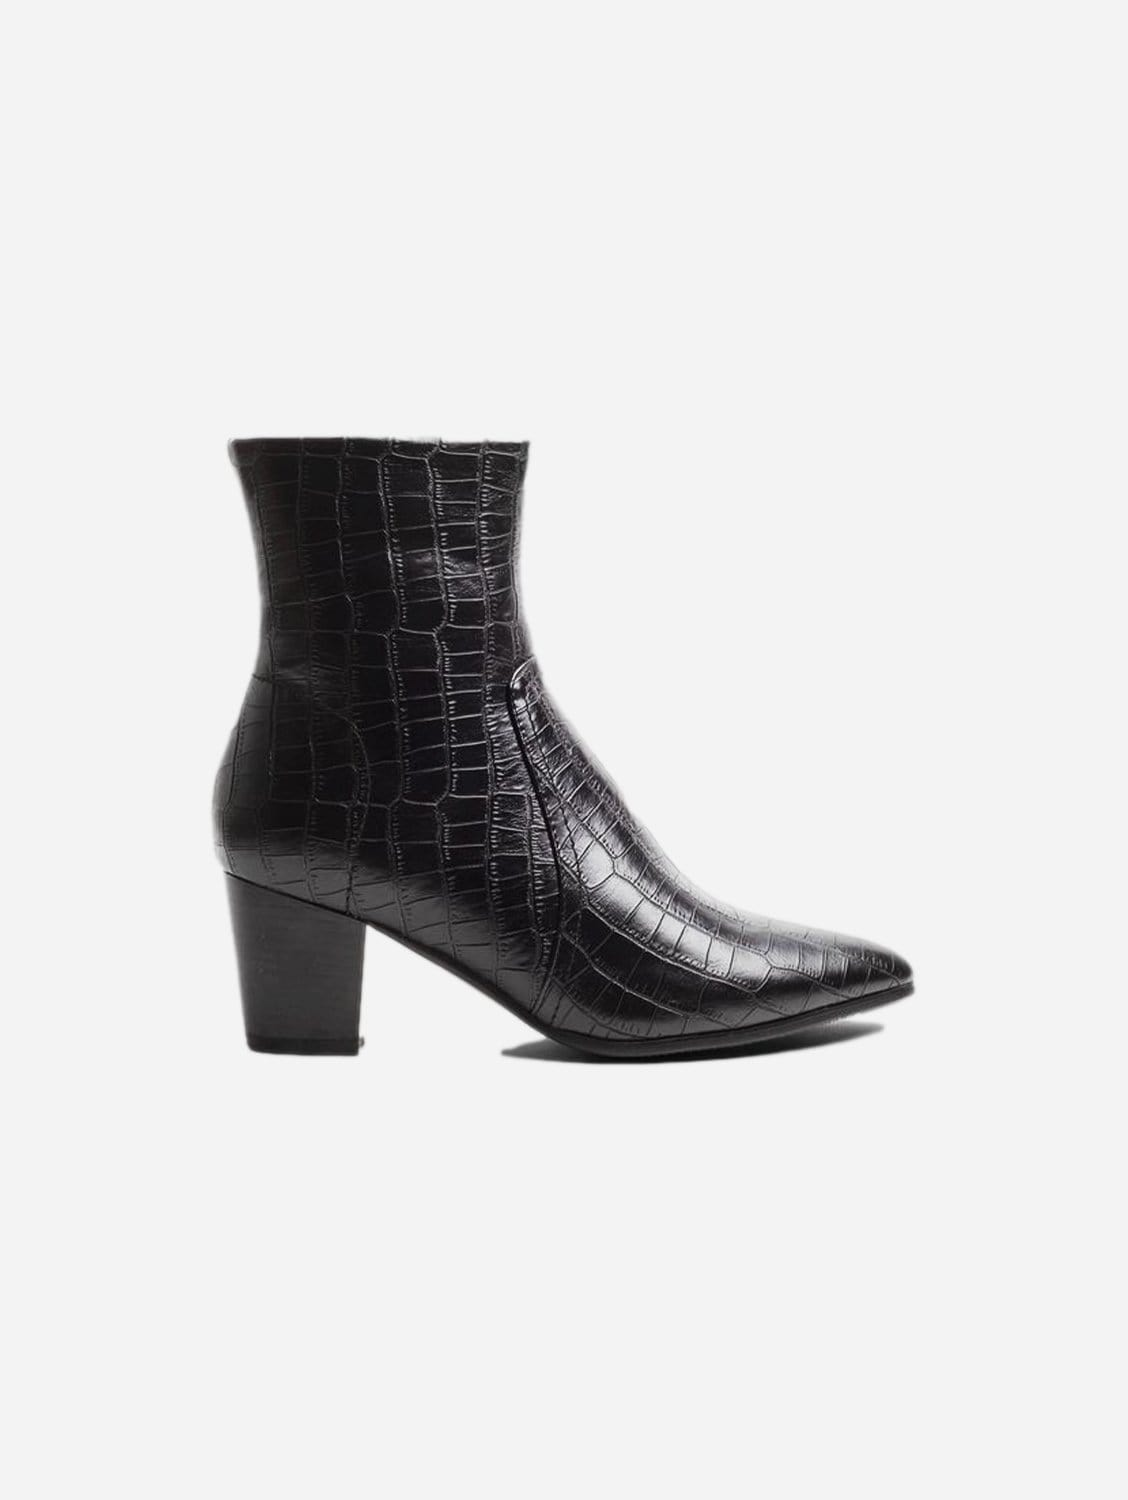 Kali Up-Cycled Vegan Leather Boots   Black Croc